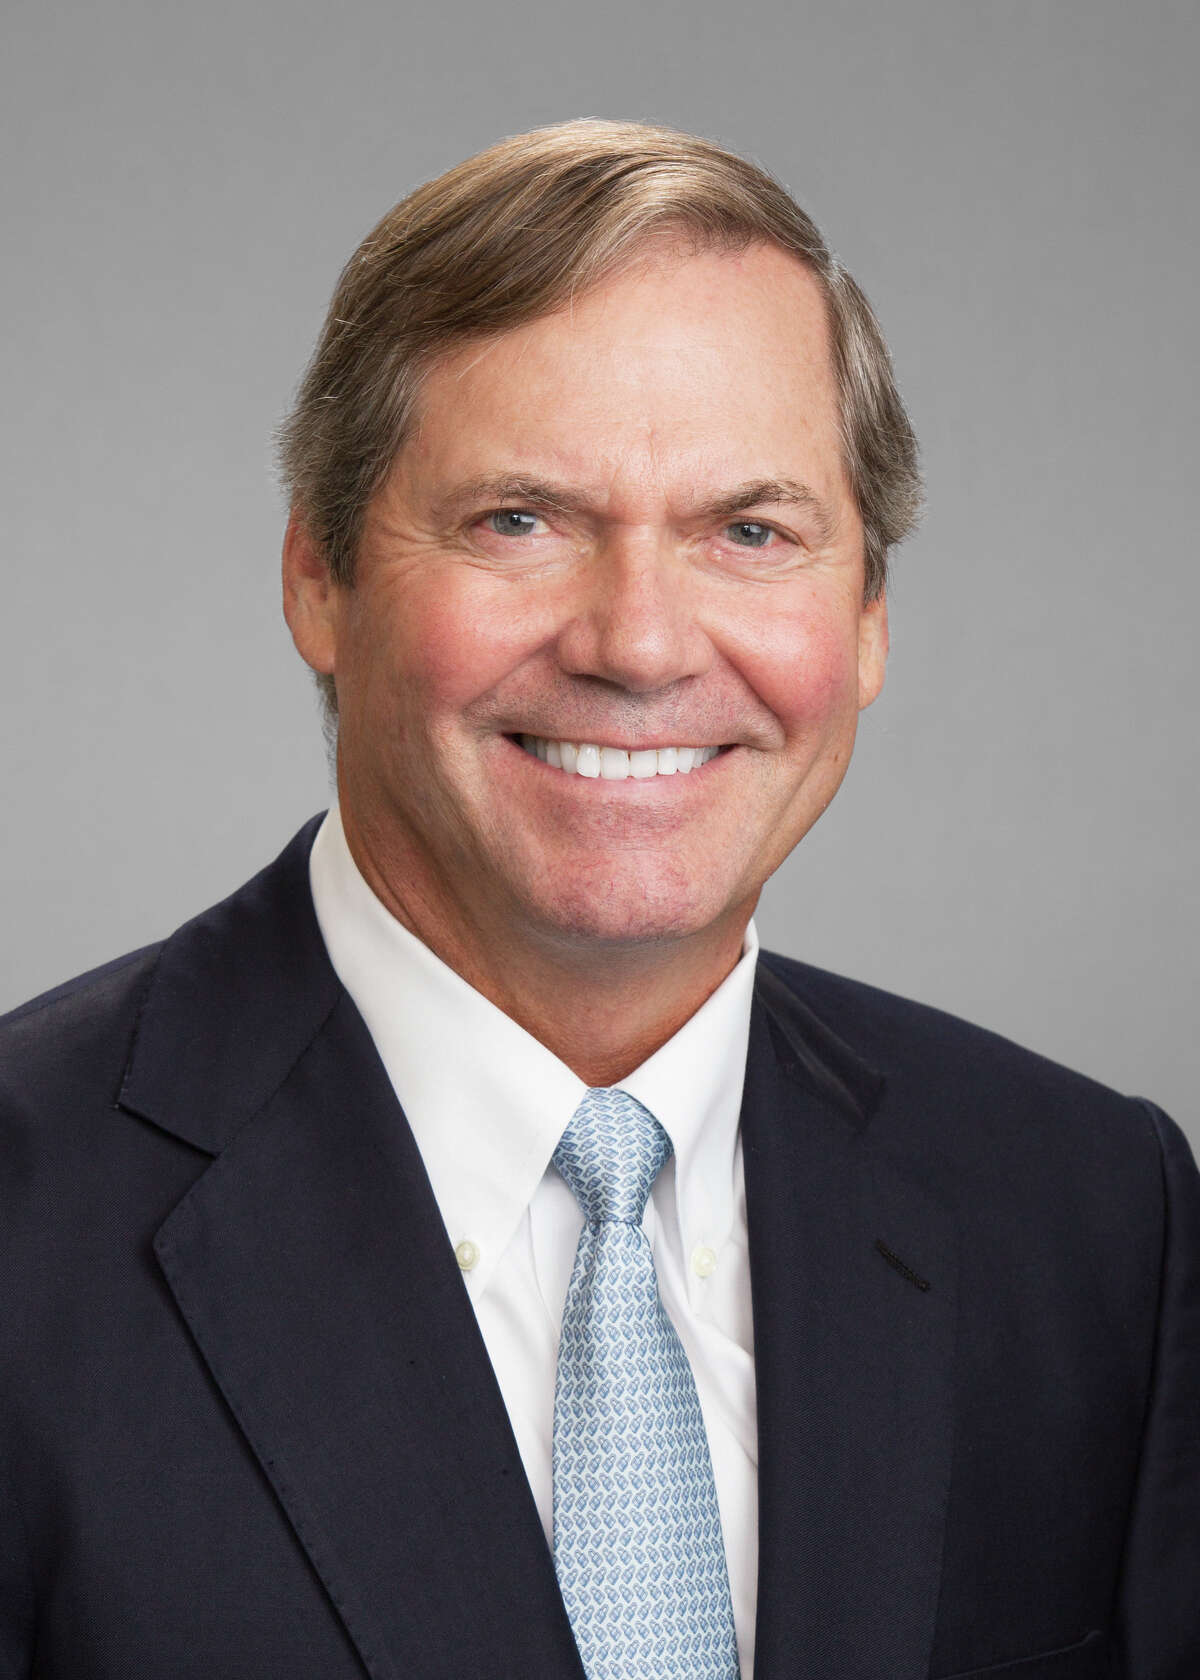 With more than 40 years of experience of experience in commercial and investment banking, Jim Hansen has been tapped to lead Opportune Partners as head of investment banking.